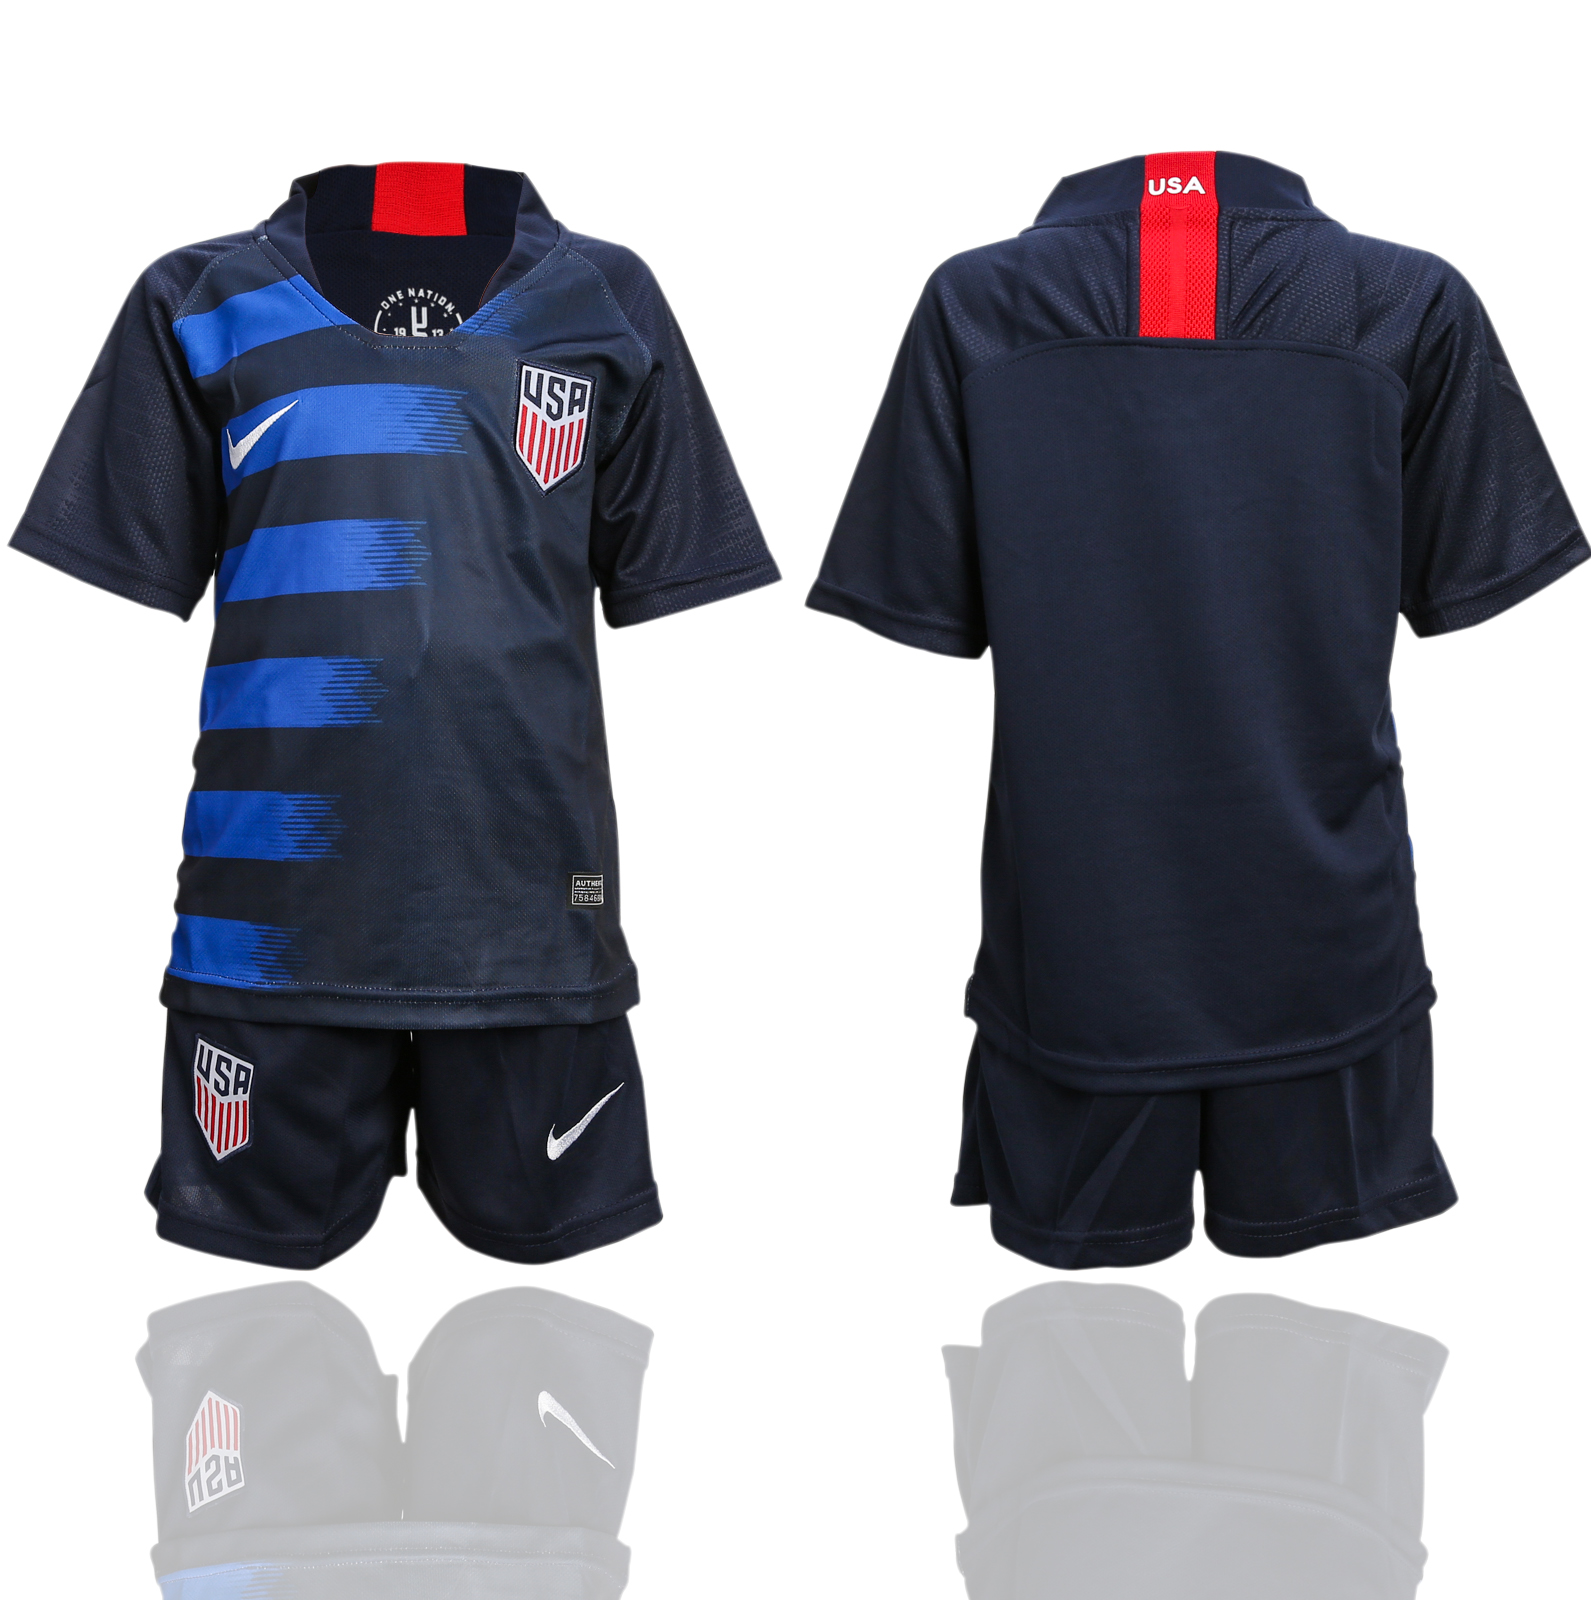 2018-2019 national America away youth soccer jersey